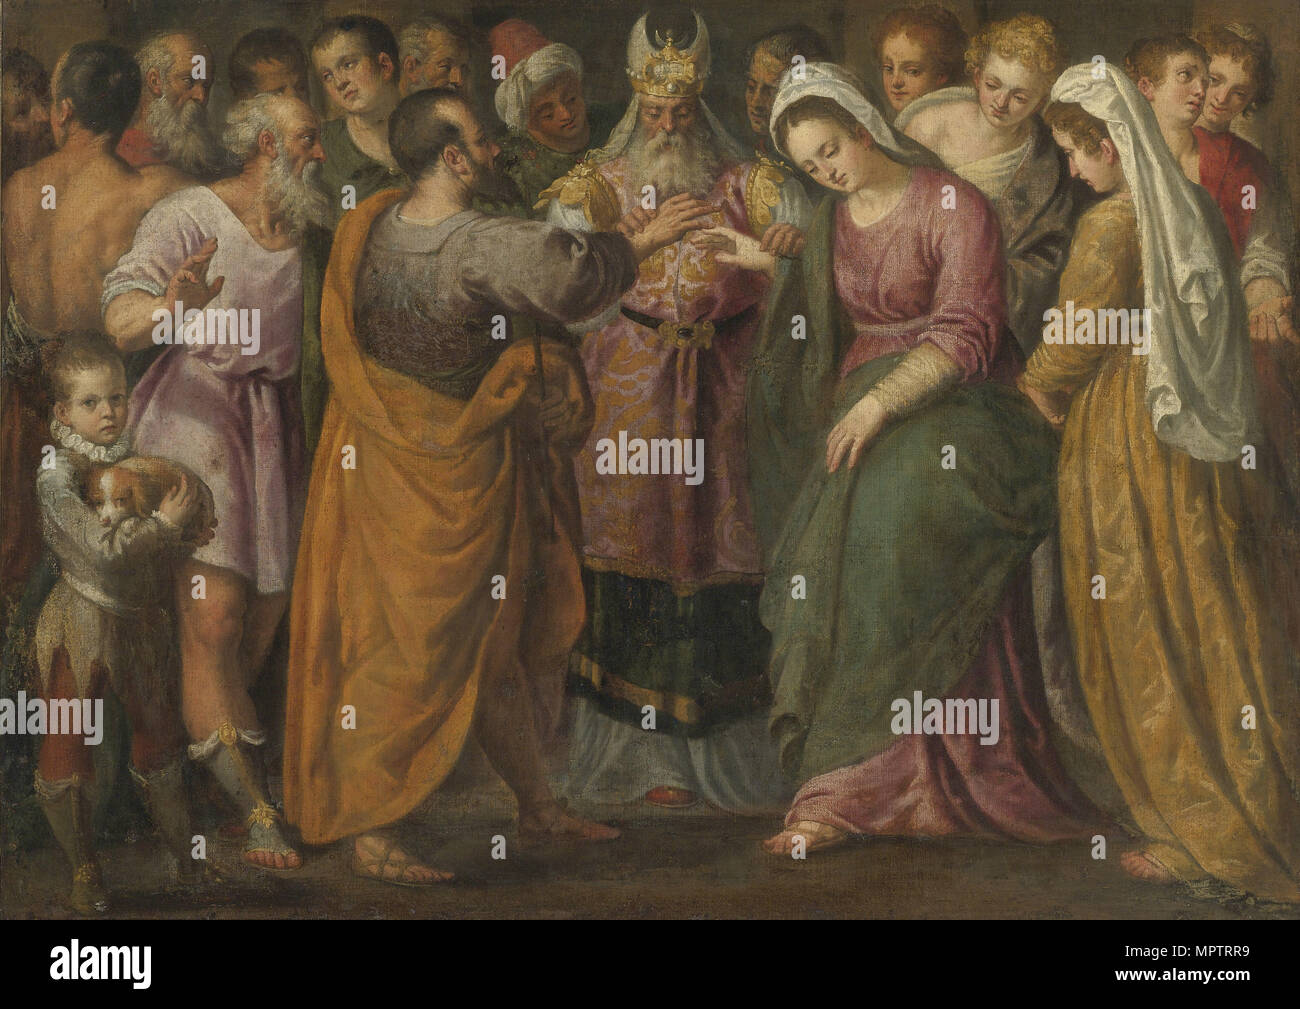 The Marriage of Mary and Joseph. - Stock Image